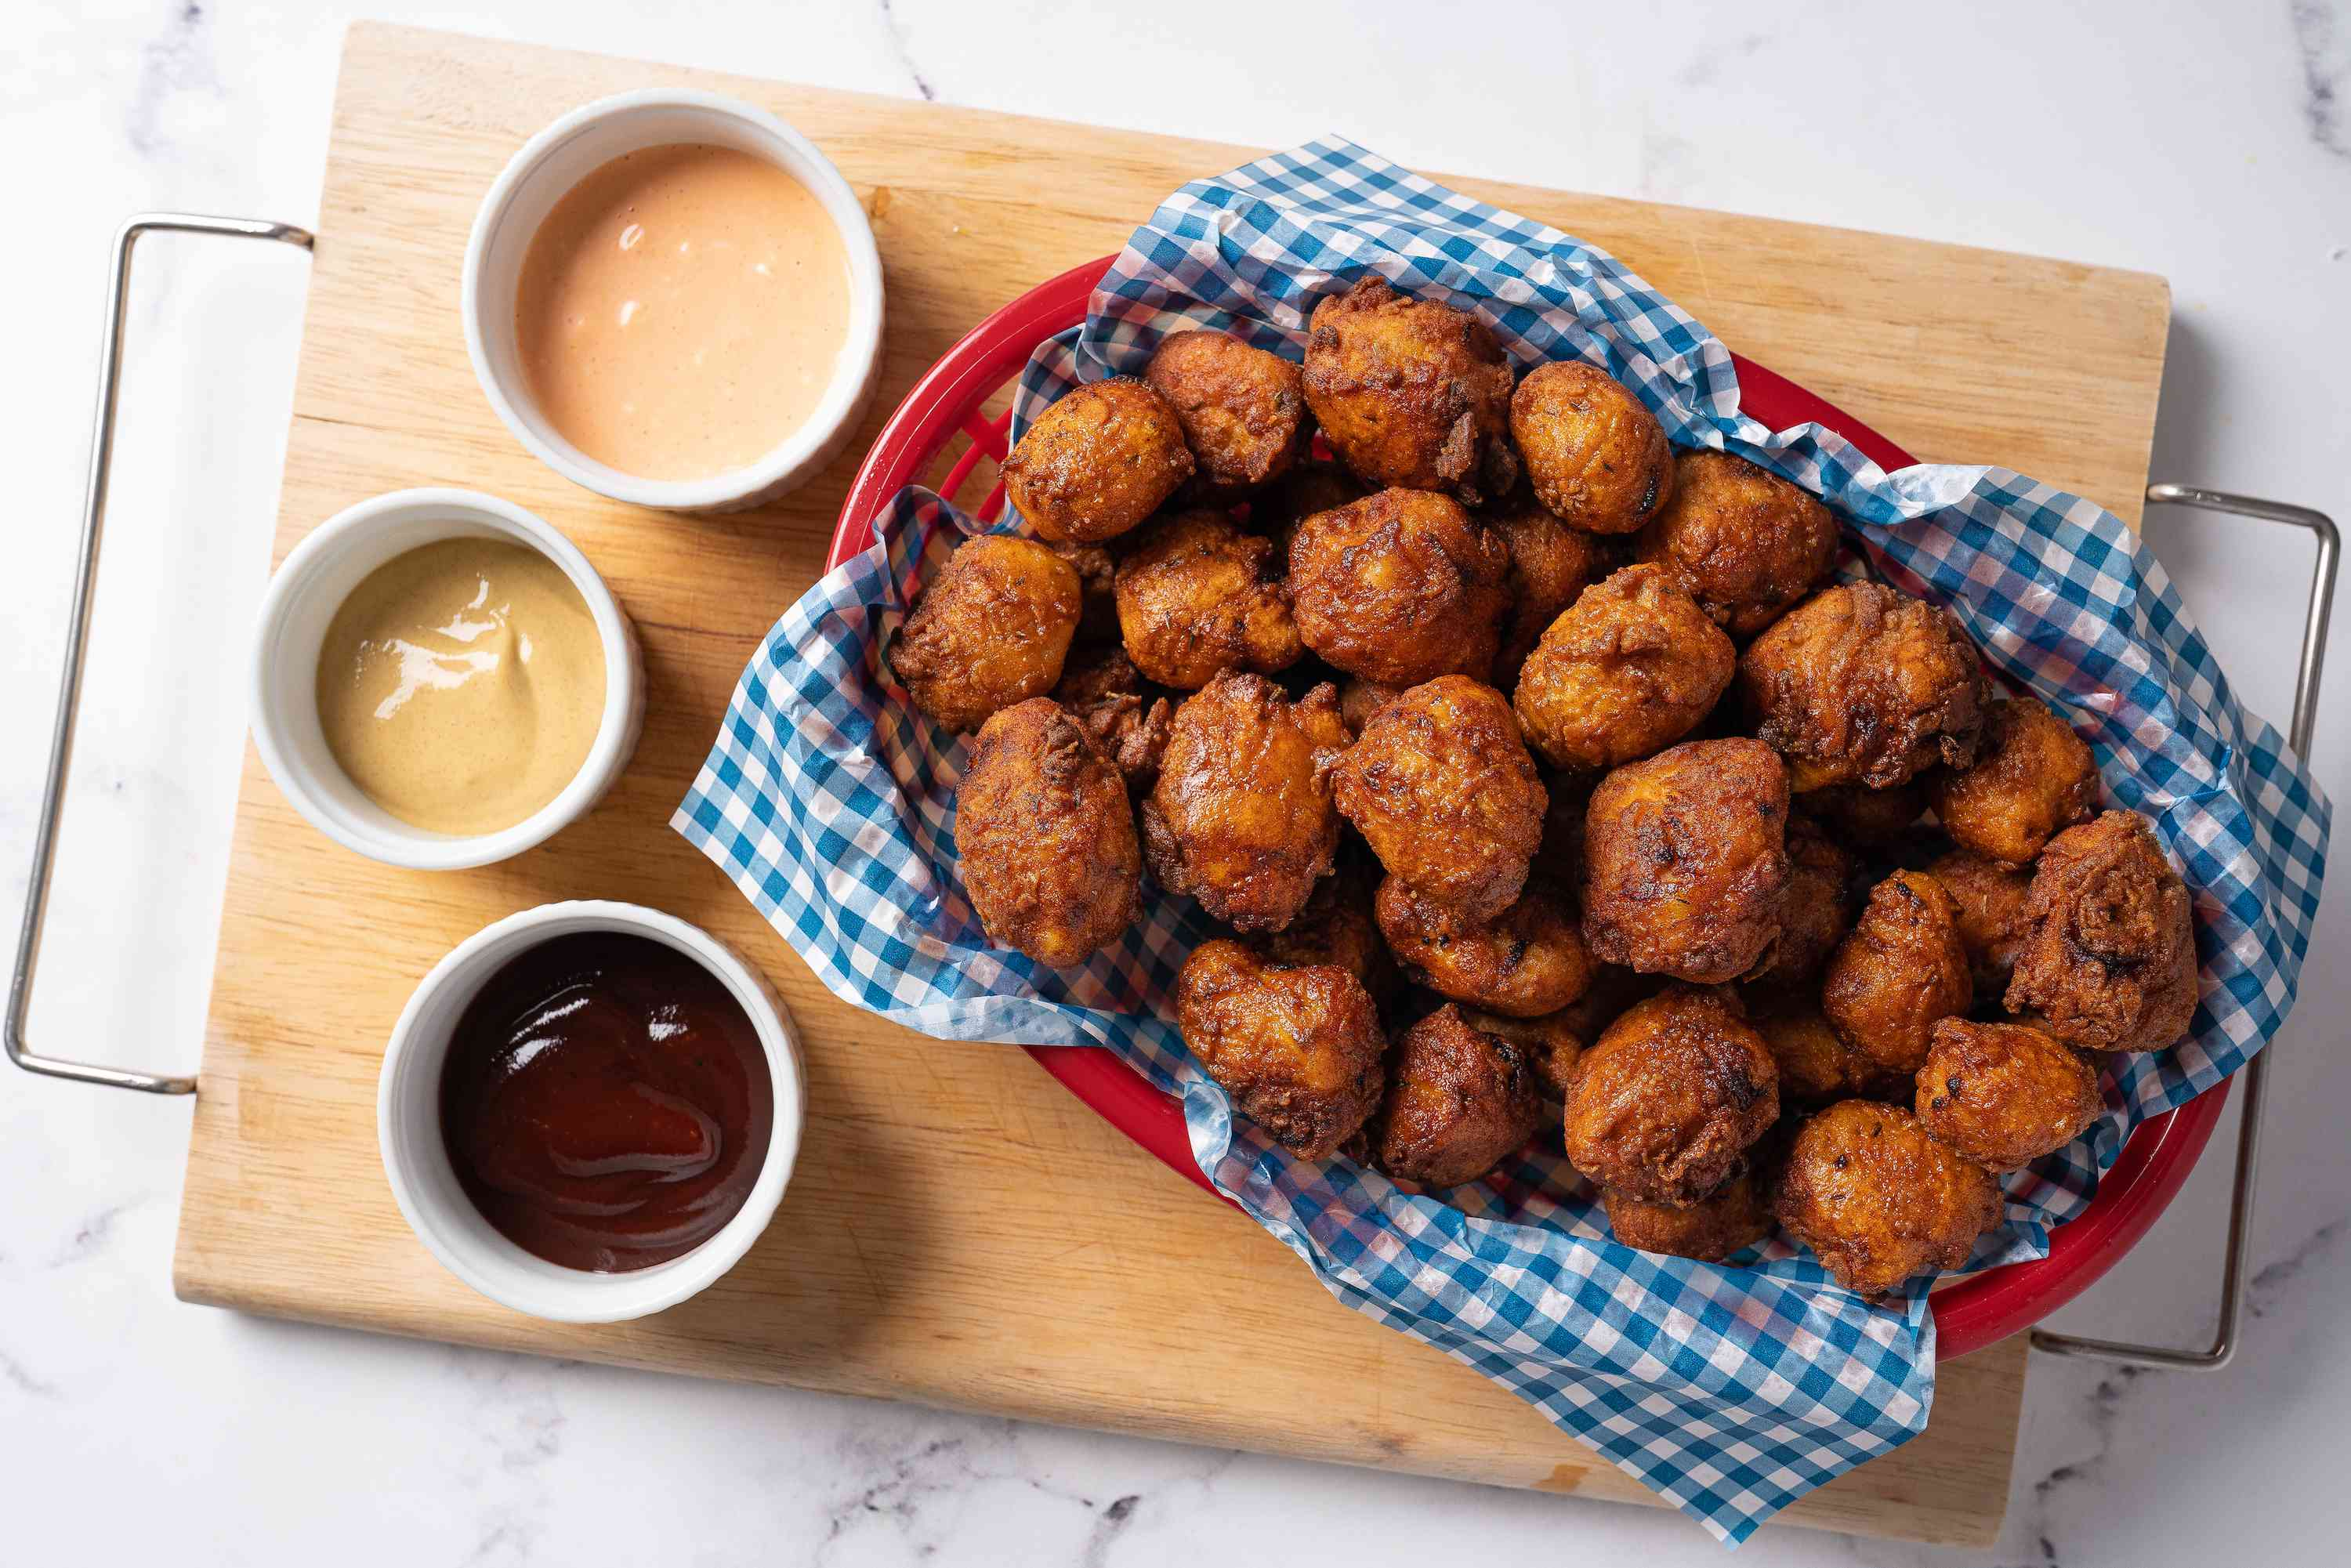 Popcorn chicken with dipping sauces